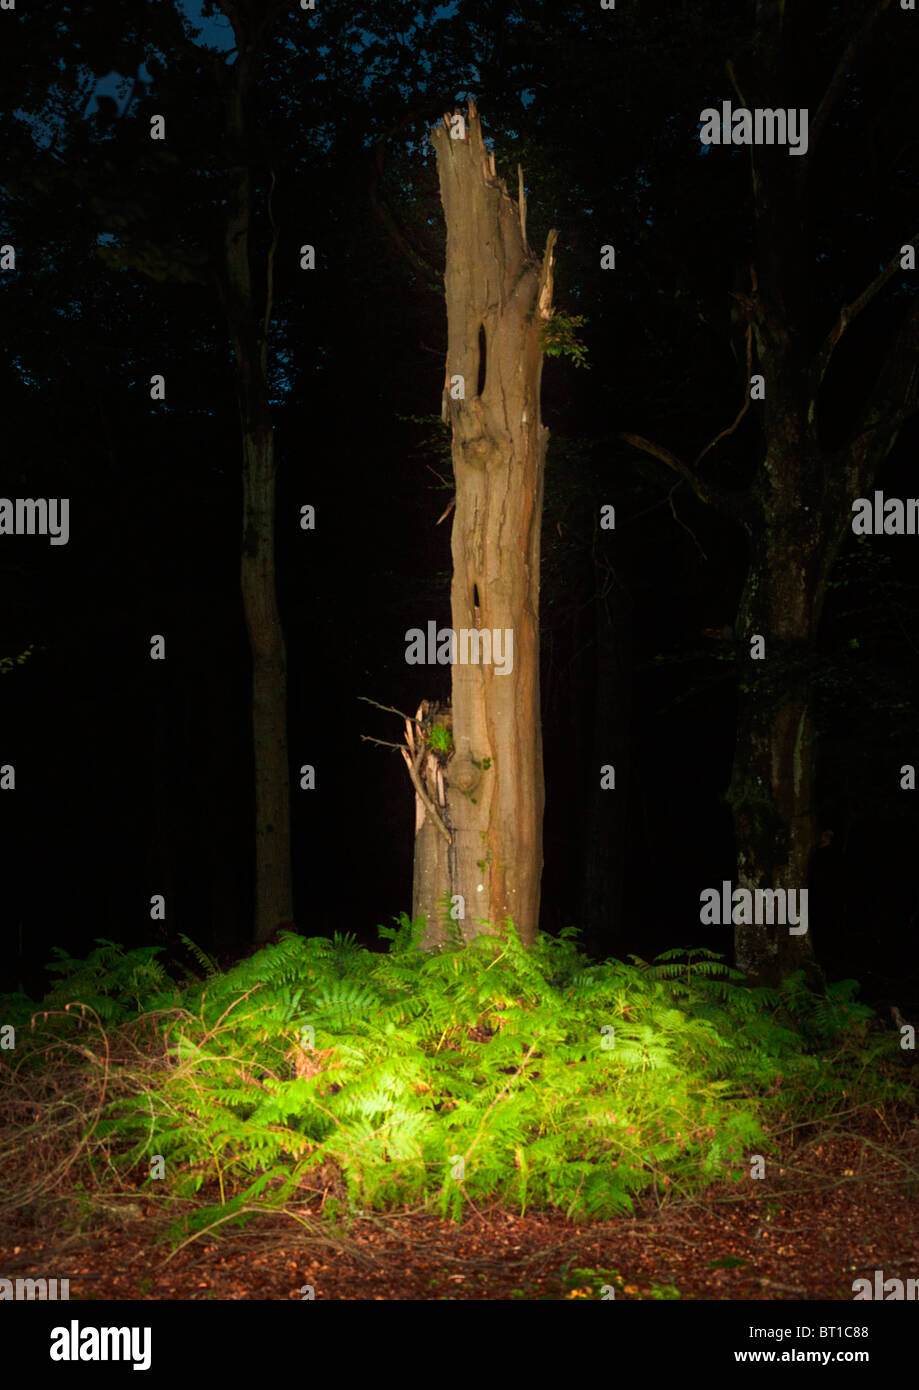 lone dead tall tree trunk surrounded by bracken and autumn copper leaves - Stock Image